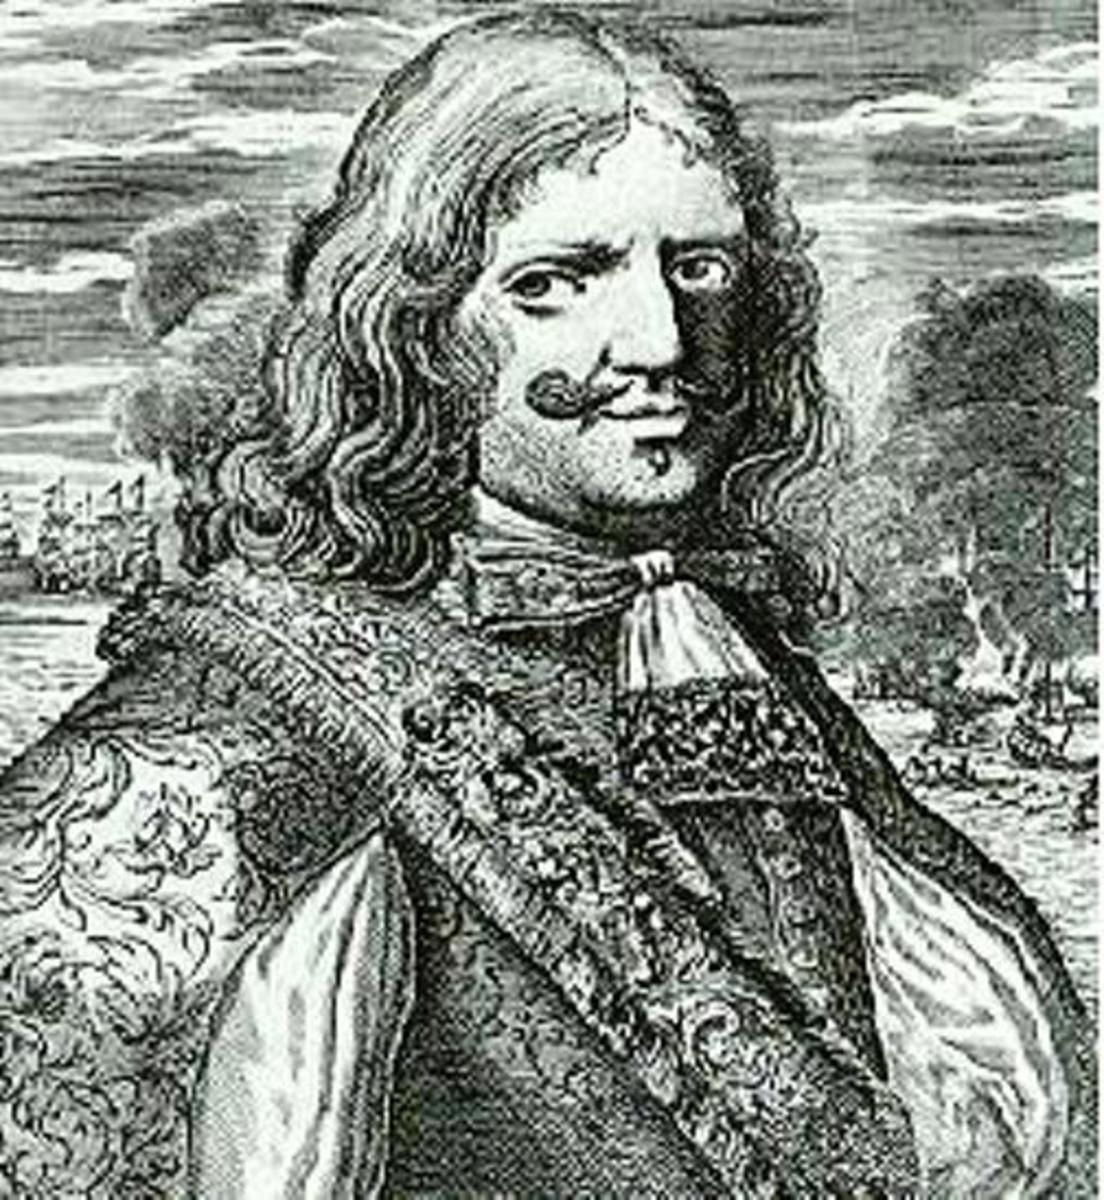 Captain Henry Morgan, 18th-Century Pirate of the Caribbean